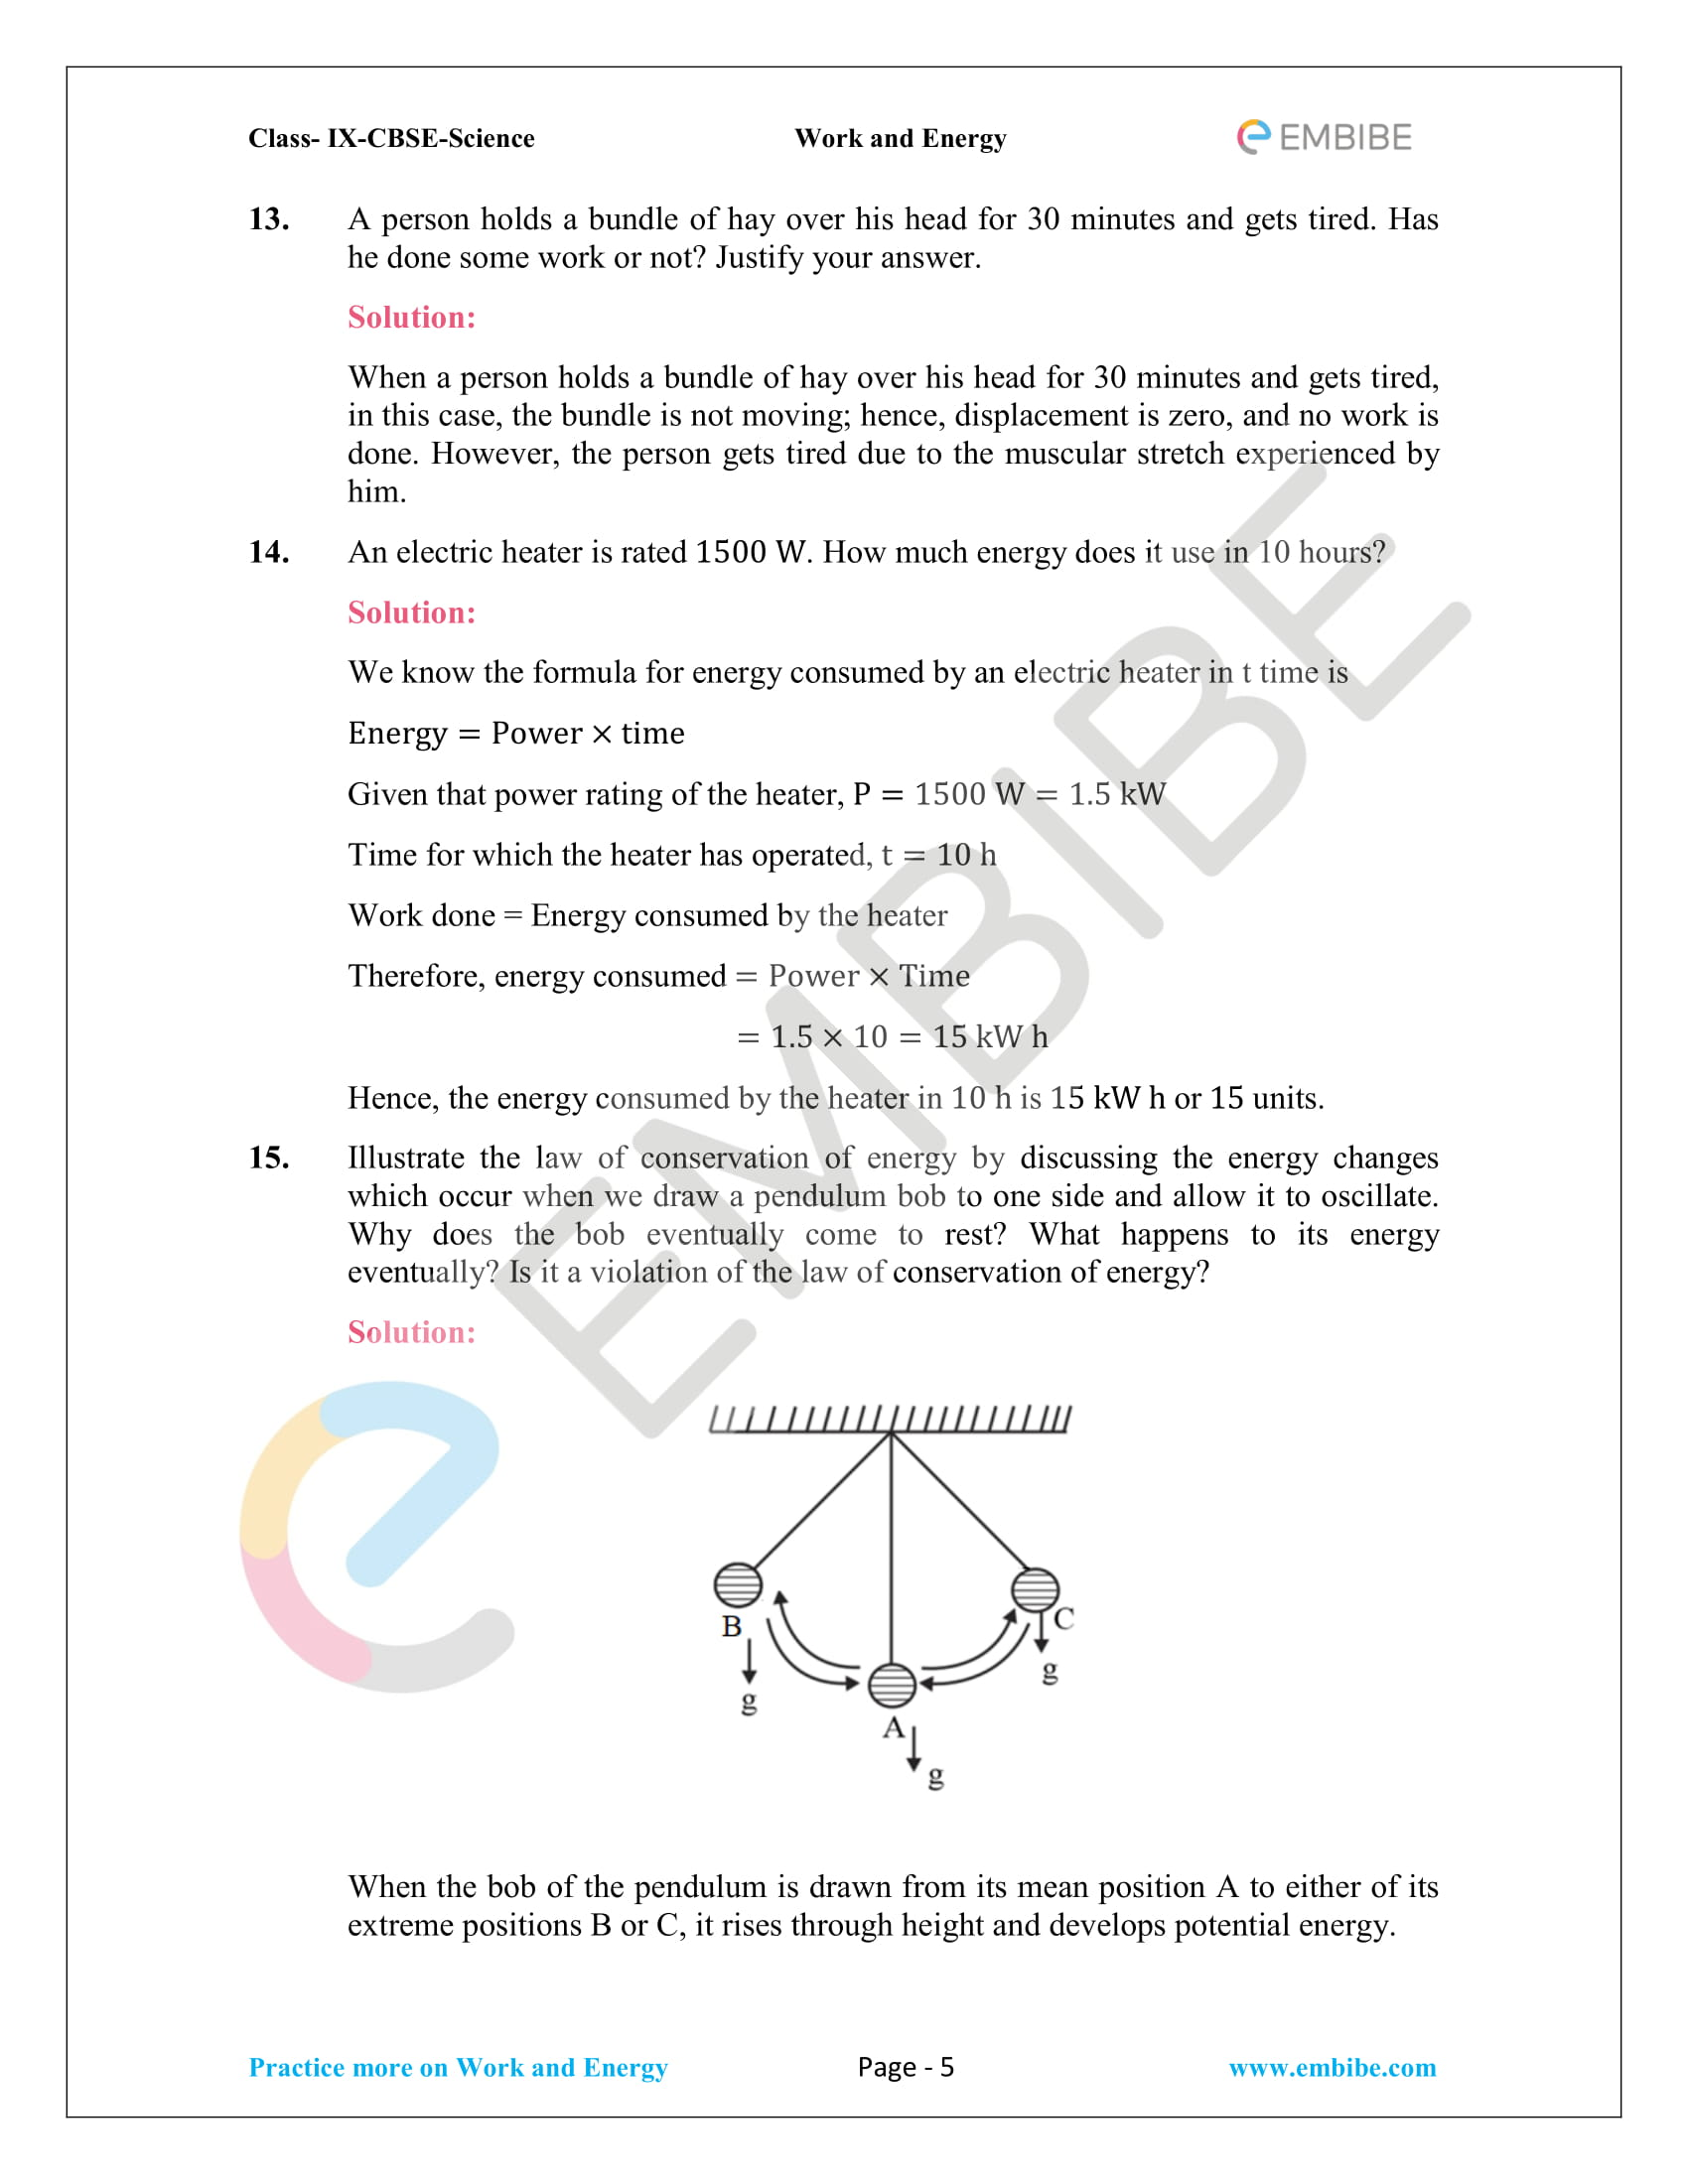 CBSE NCERT Solutions For Class 9 Science Chapter 11 – Work And Energy - 5